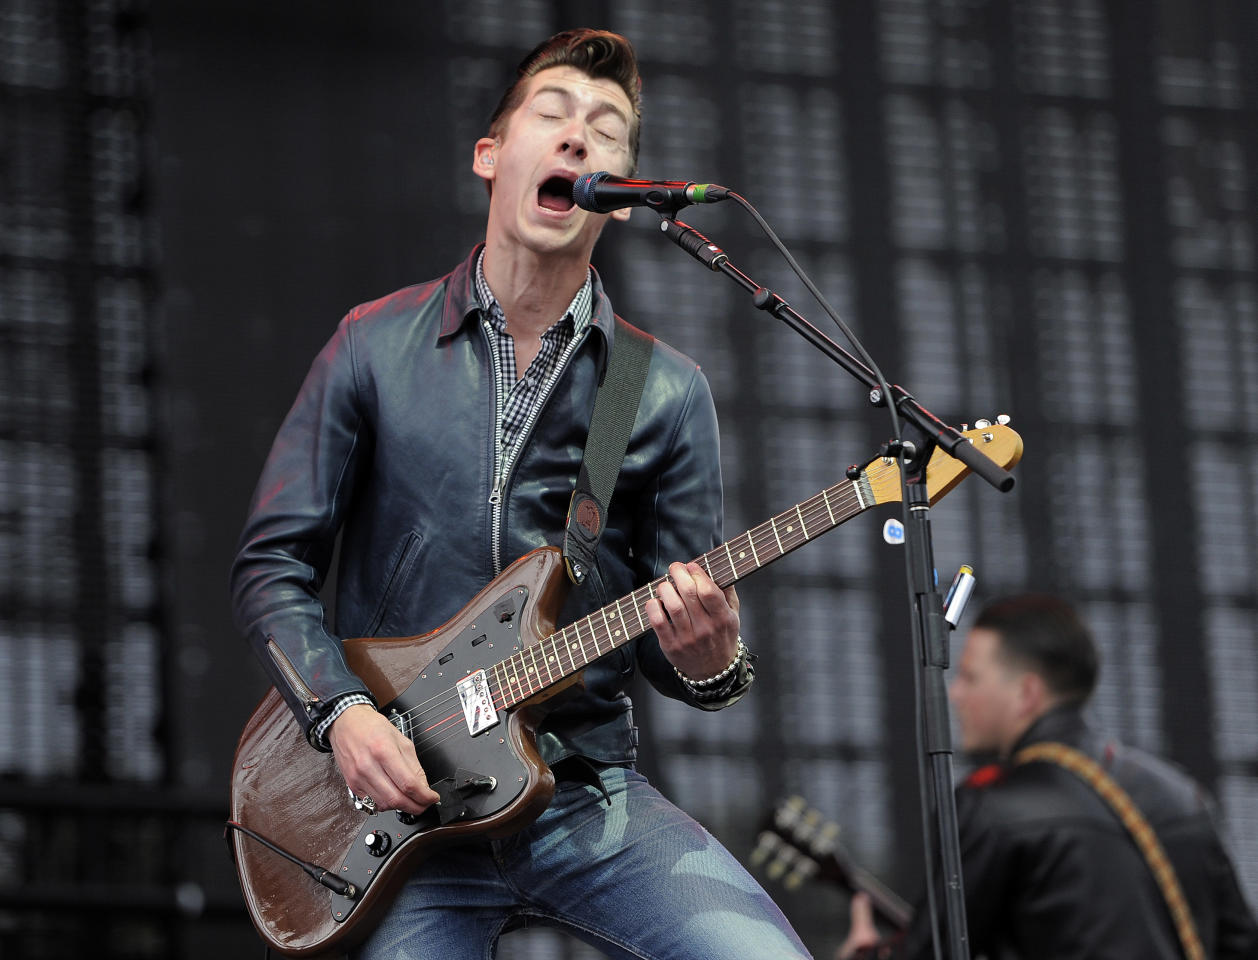 Alex Turner of British band Arctic Monkeys performs during the band's set on the first weekend of the 2012 Coachella Valley Music and Arts Festival, Friday, April 13, 2012, in Indio, Calif. (AP Photo/Chris Pizzello)